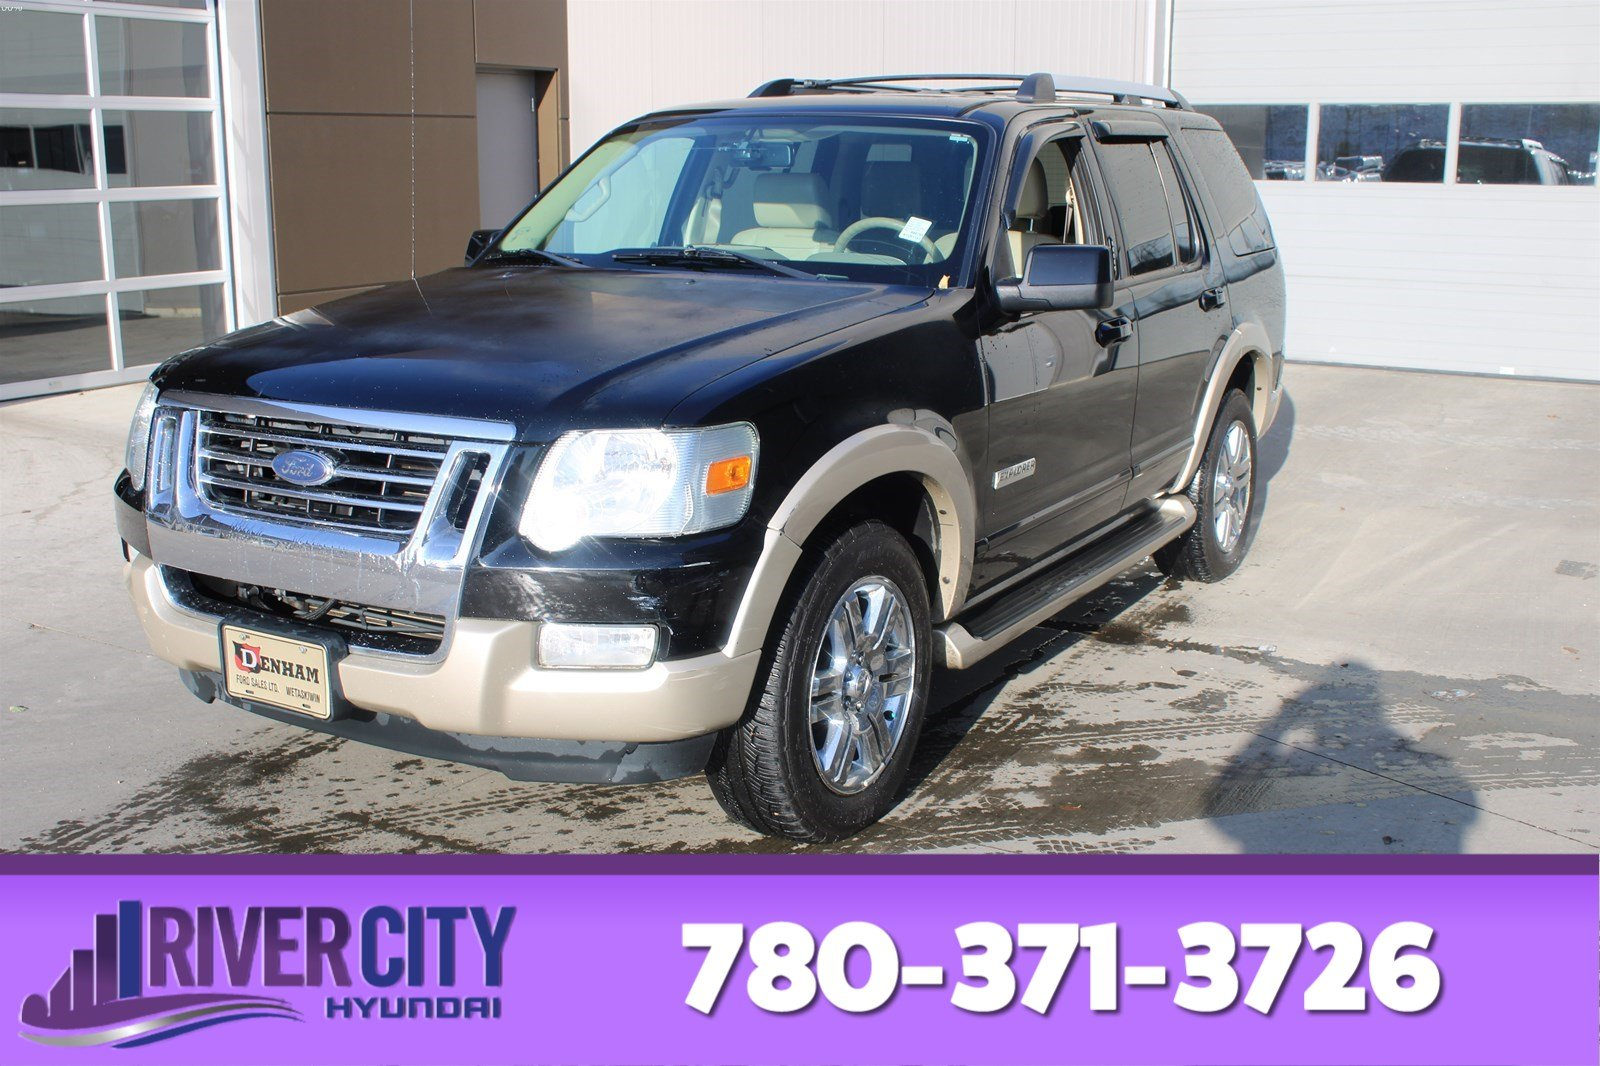 2007 Ford Explorer Eddie Bauer >> Pre Owned 2007 Ford Explorer Awd Eddie Bauer Leather Heated Seats Sunroof A C